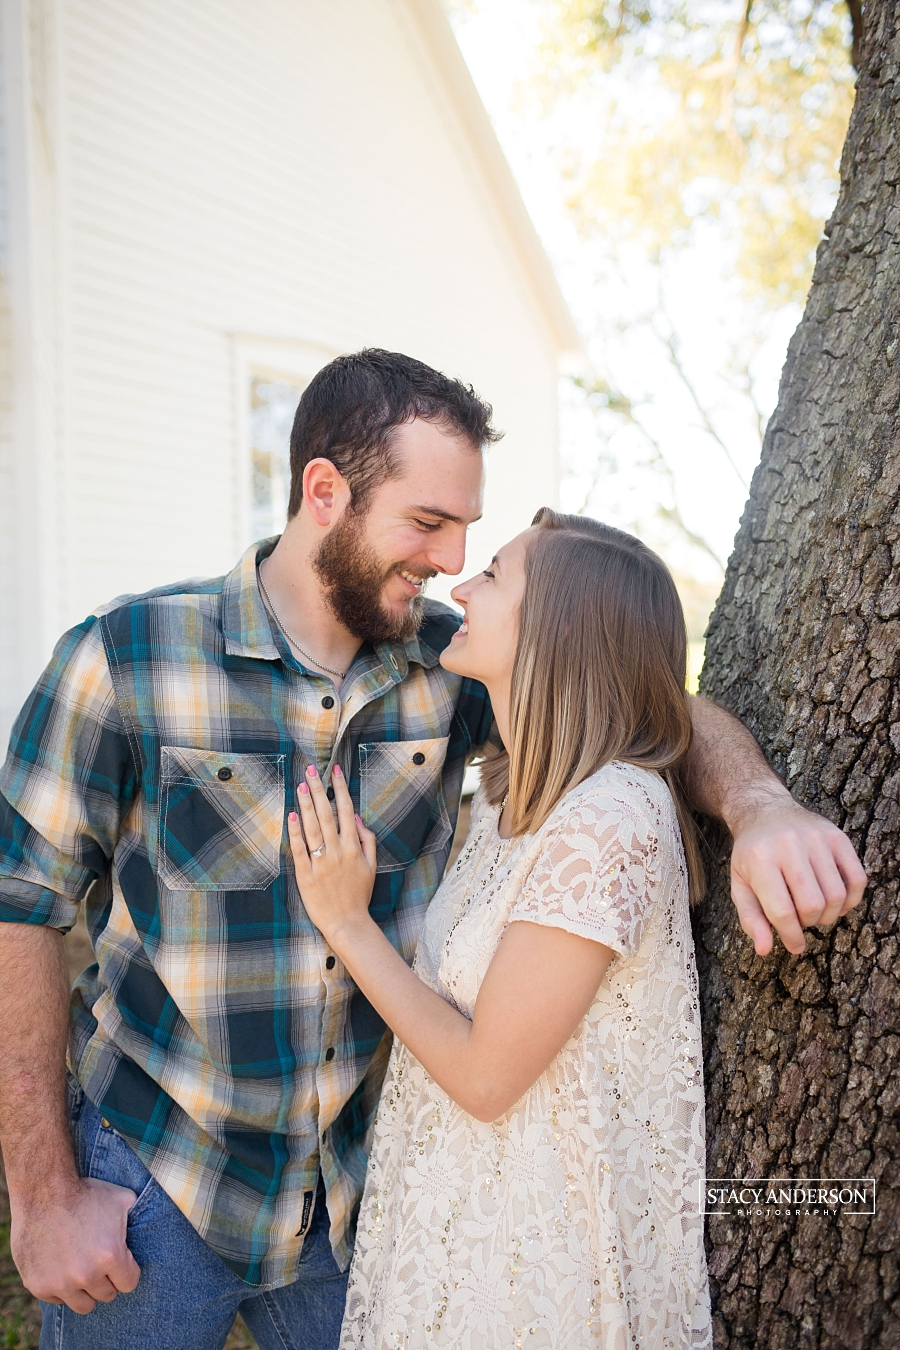 stacy-anderson-photography-alvin-wedding-photographer_0006